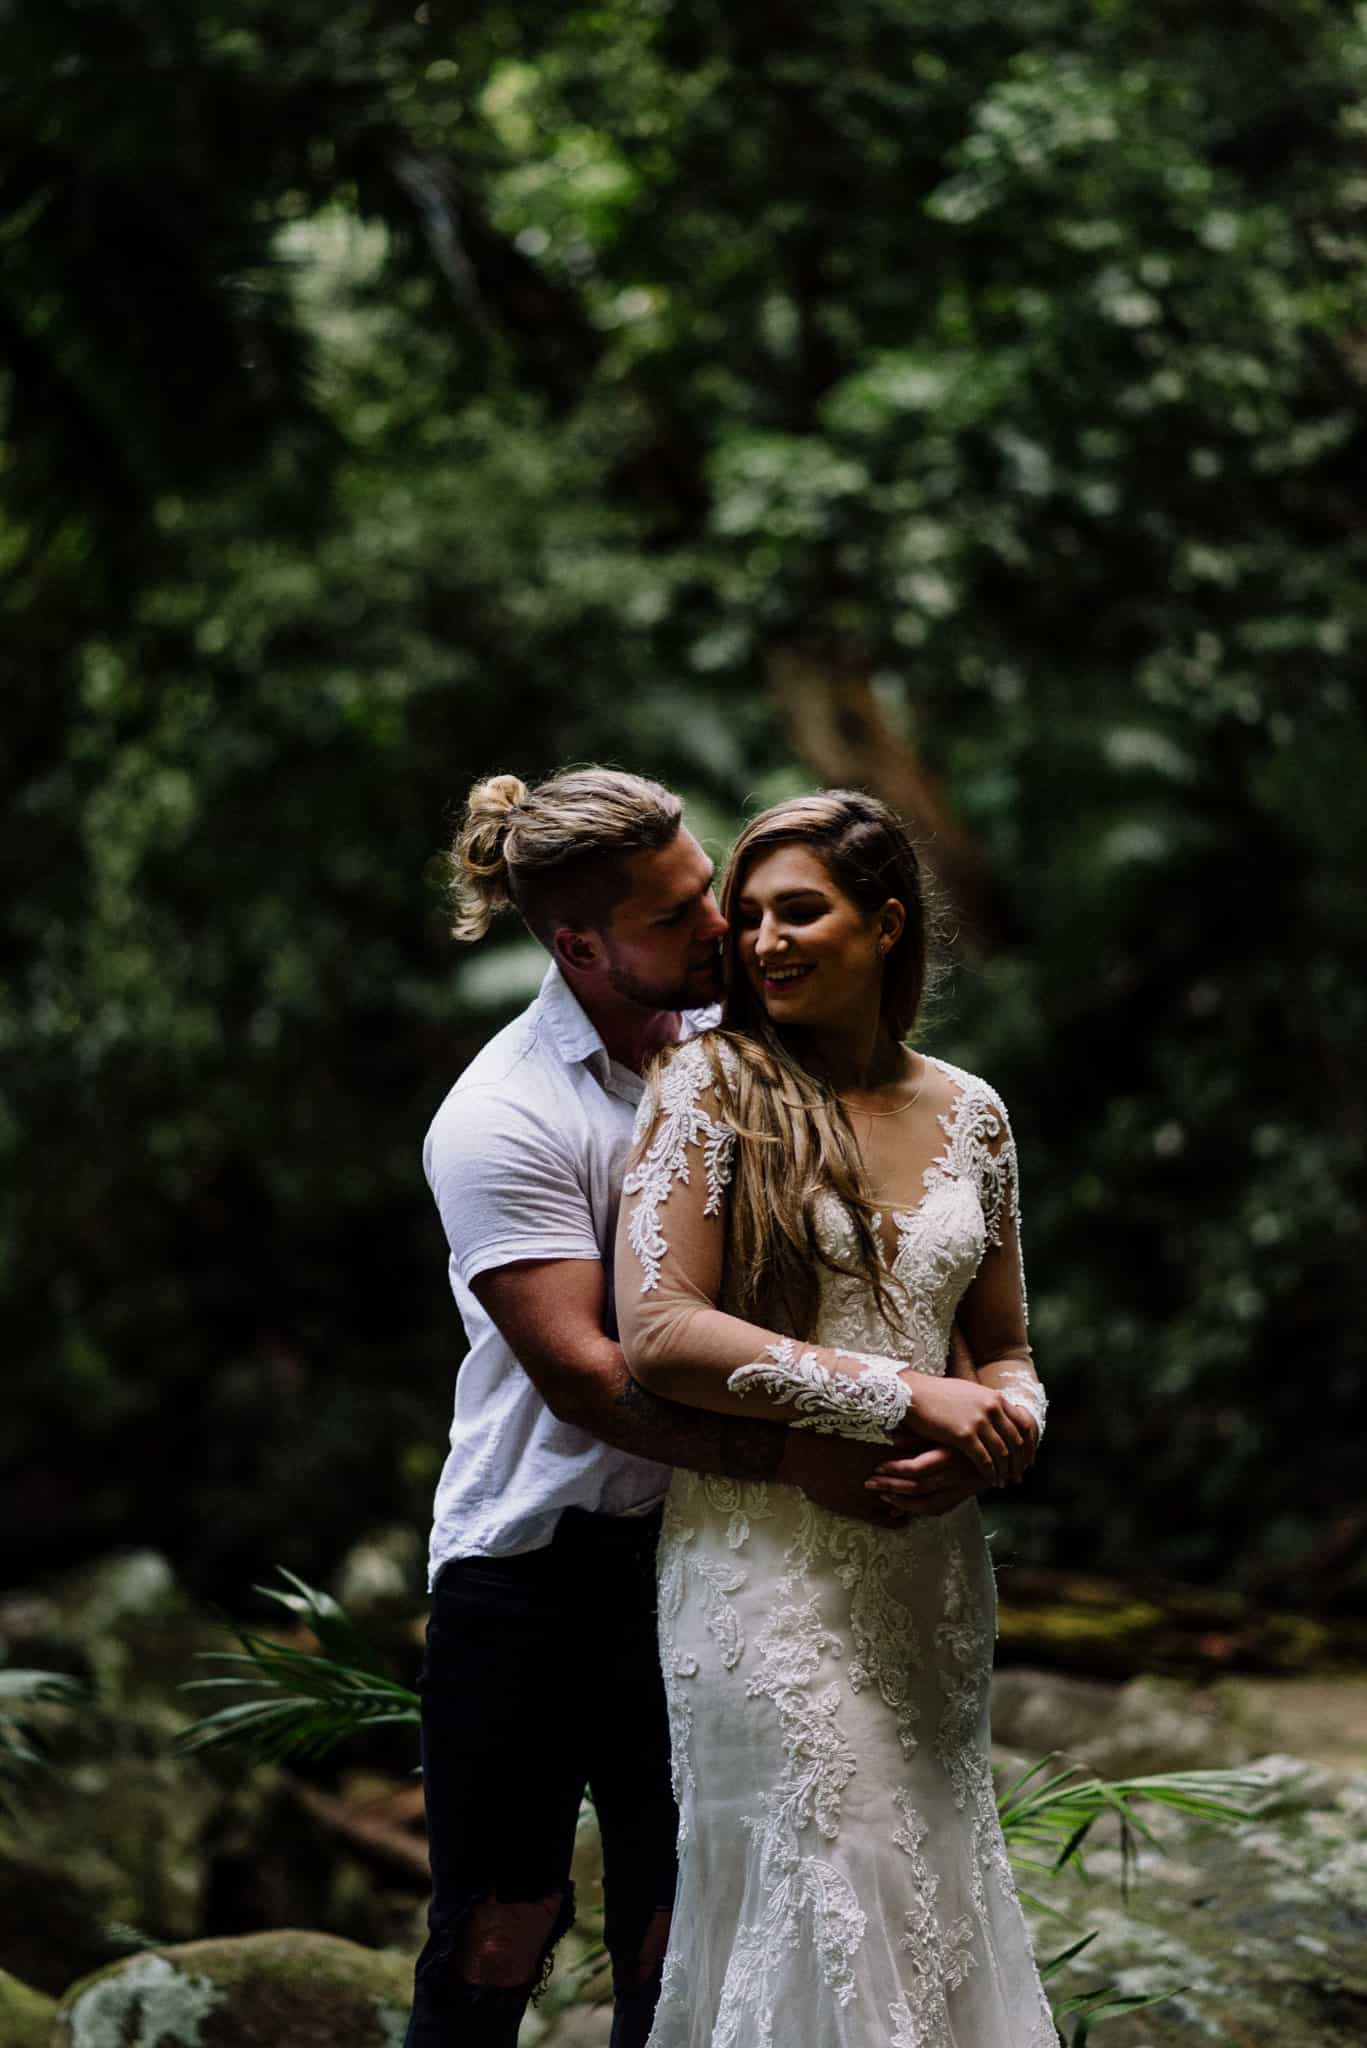 Bride and groom share a cute hug during their forest elopement down by a waterfall